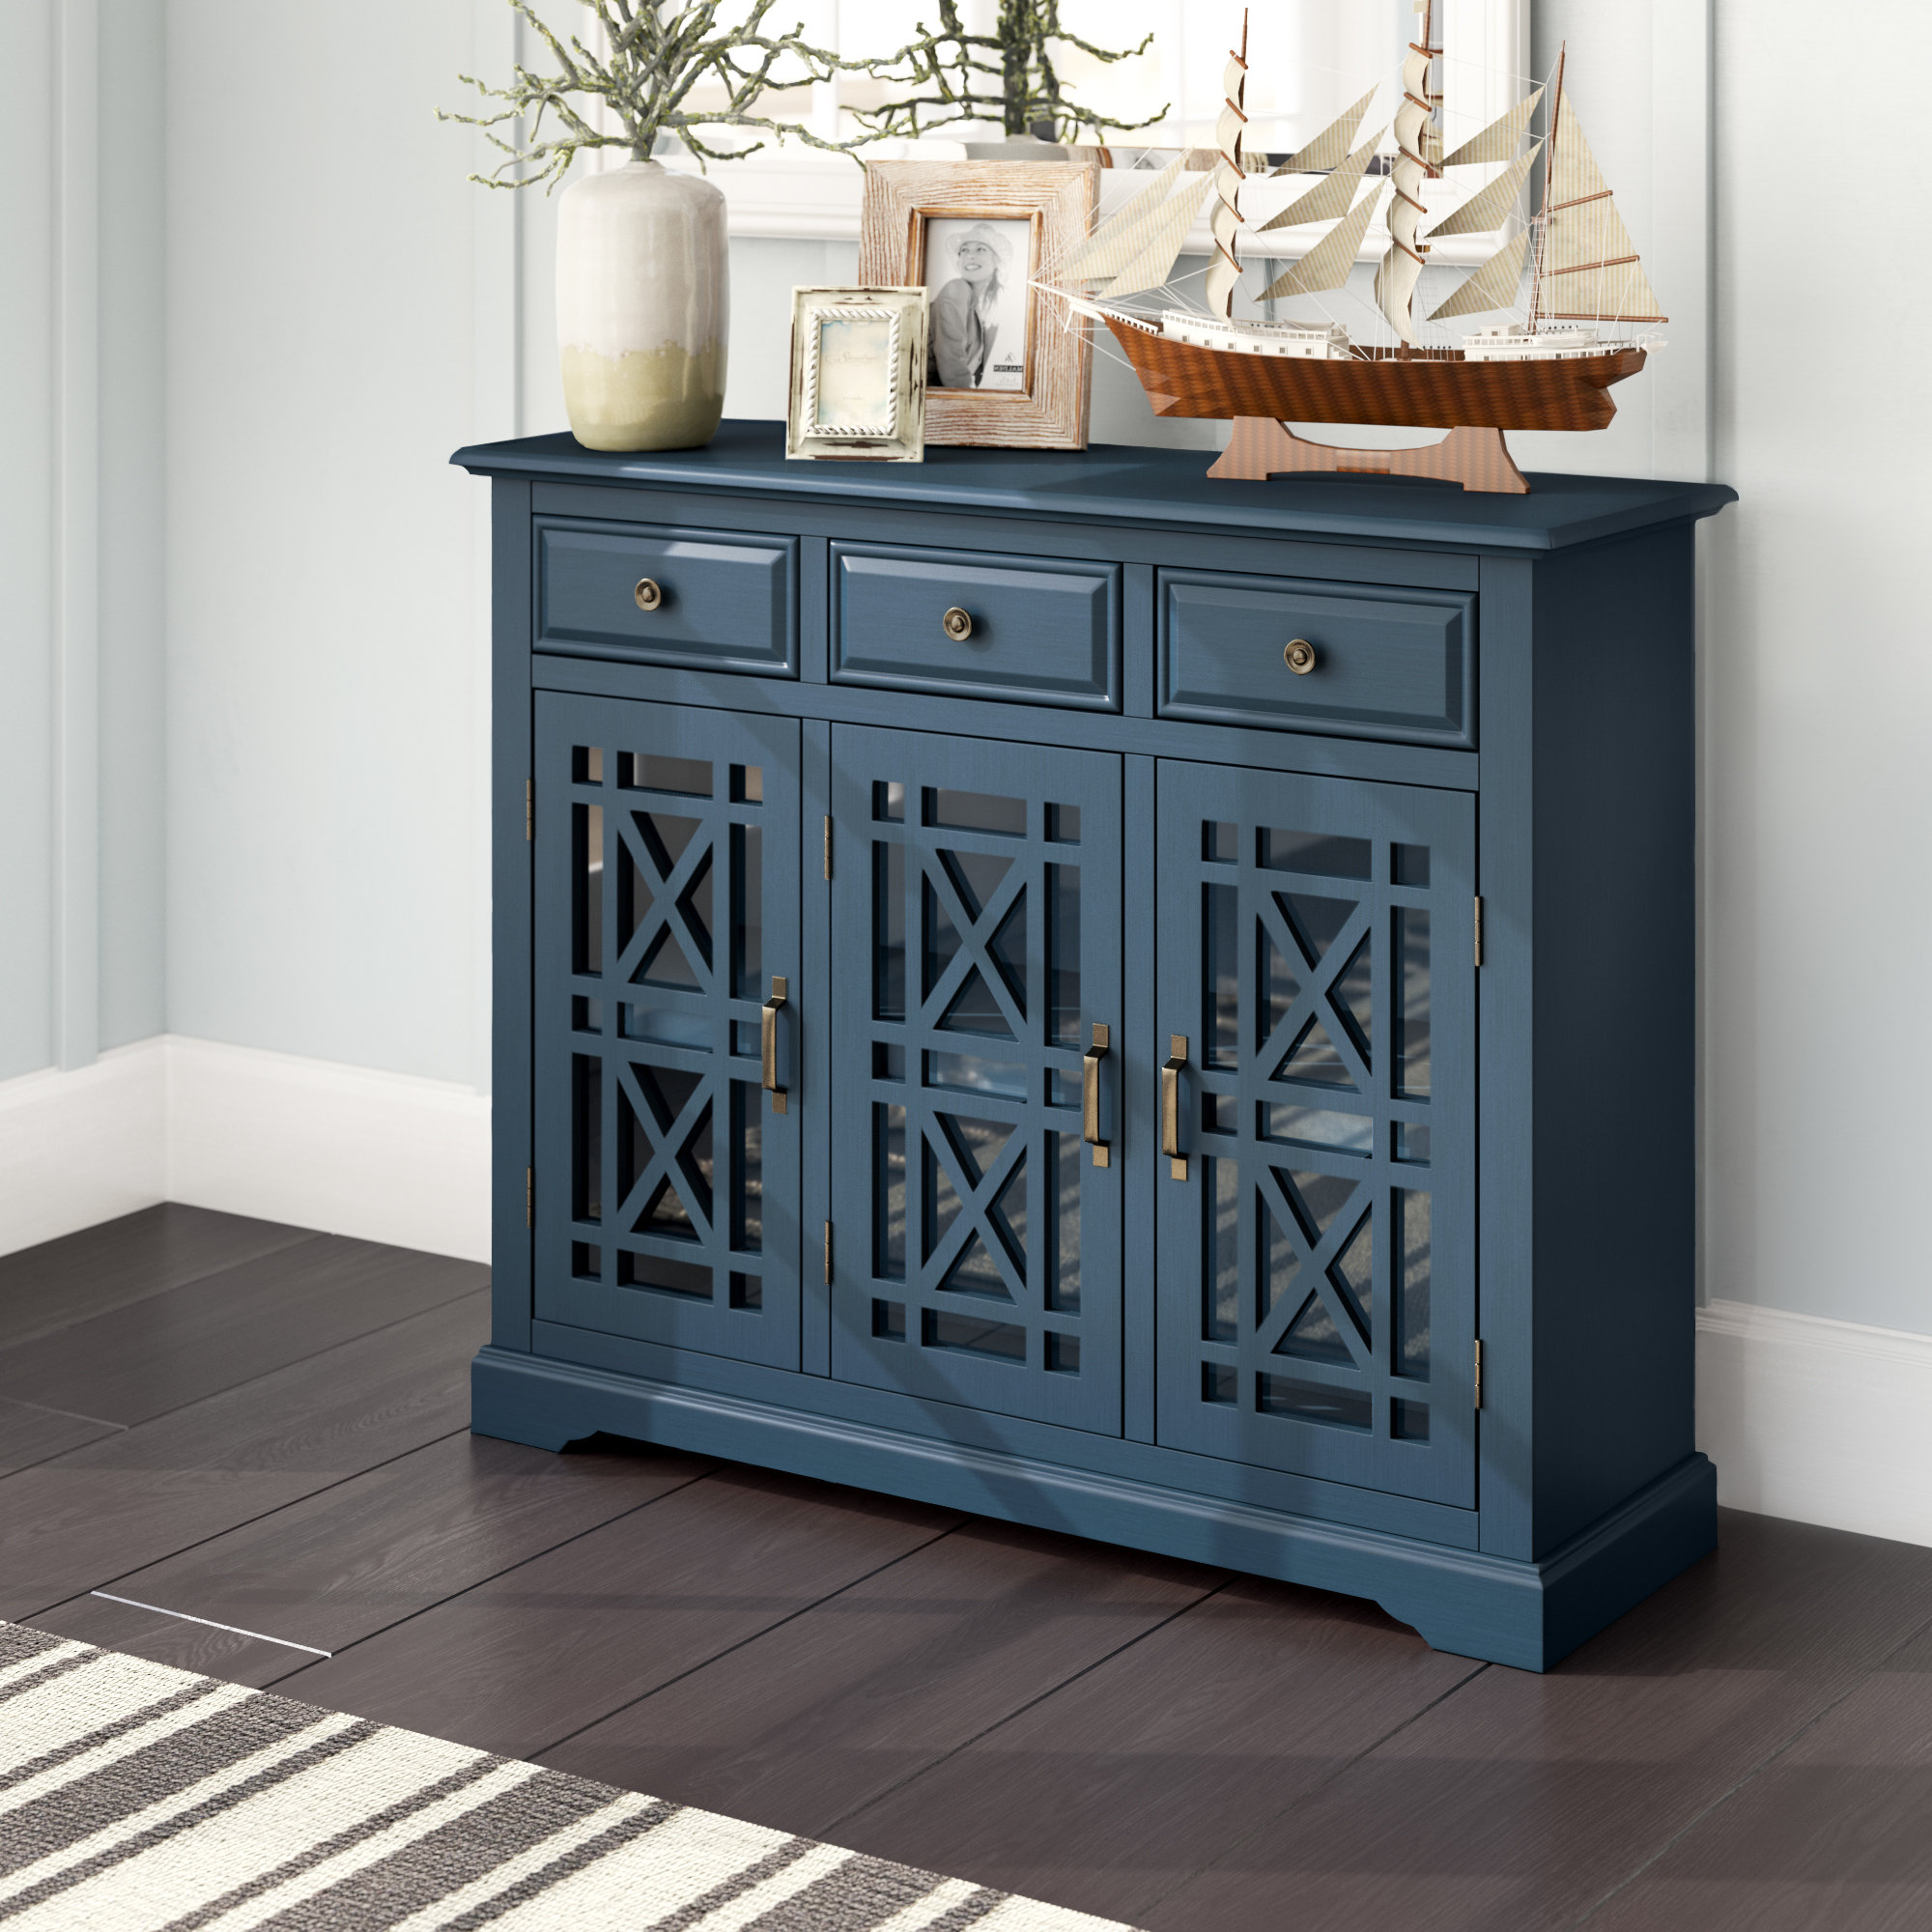 Sideboards & Buffet Tables You'll Love In 2019 | Wayfair With Regard To Most Recently Released Cambrai Sideboards (#17 of 20)